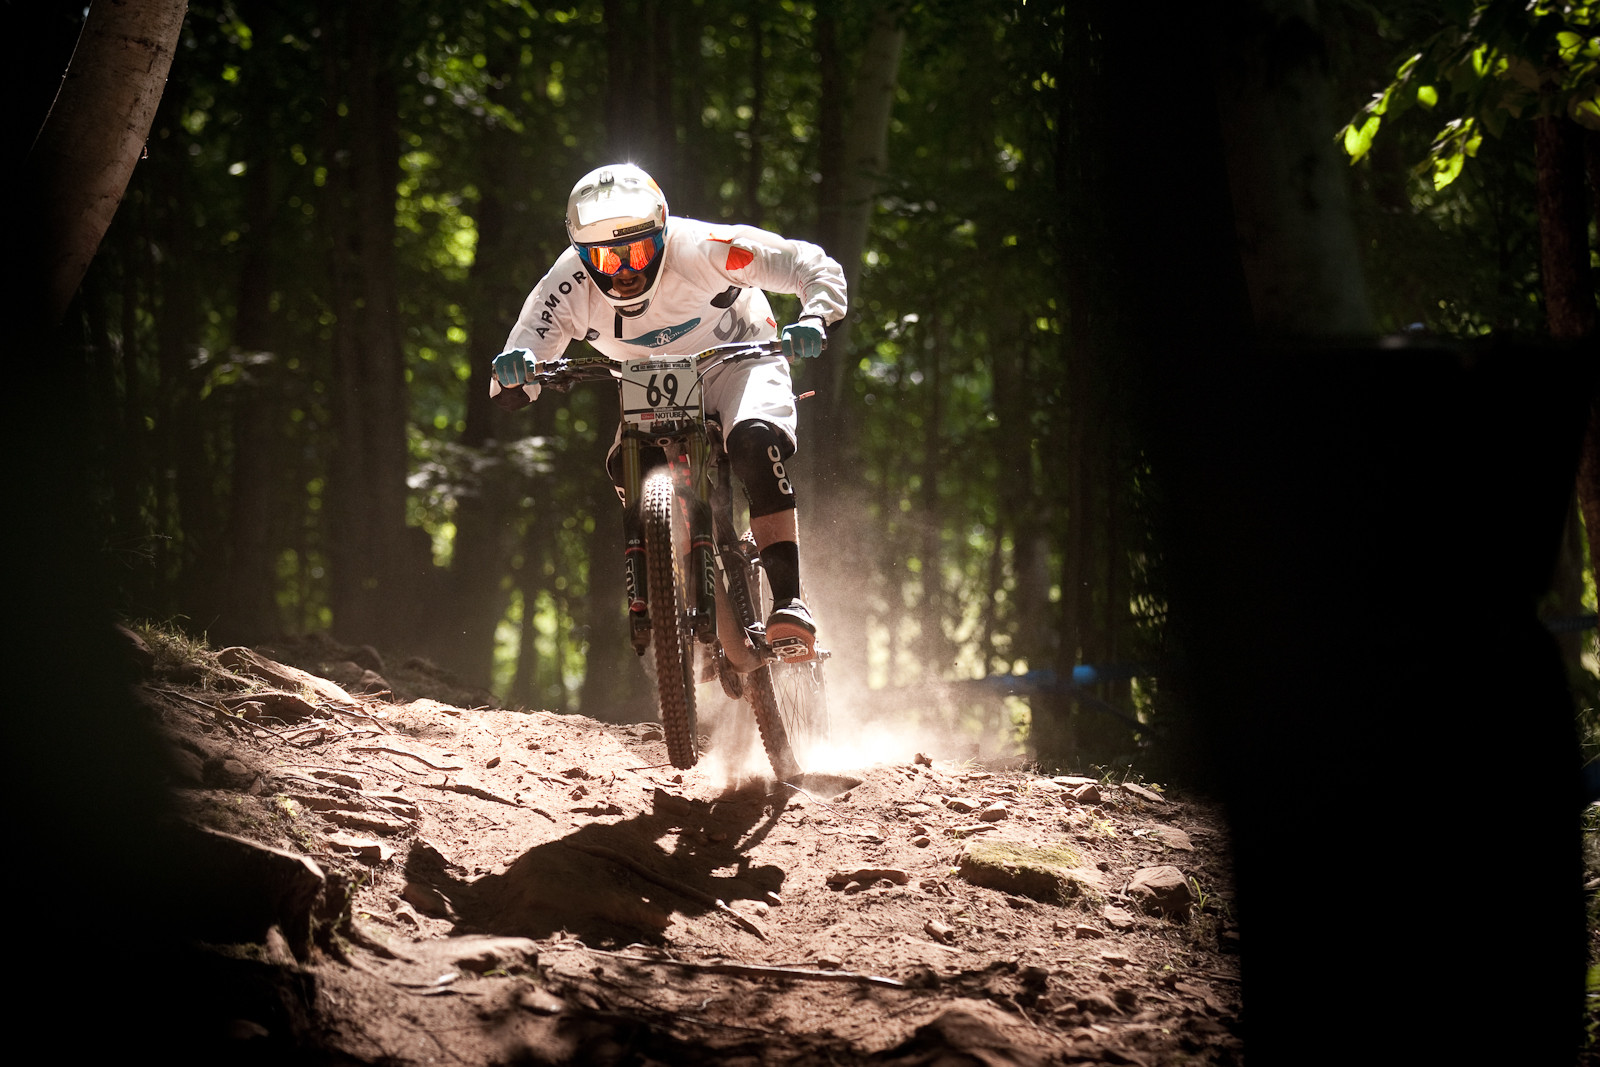 Ruaridh Cunningham, Windham World Cup - 2012 UCI World Cup, Windham, New York Day 2 - Mountain Biking Pictures - Vital MTB